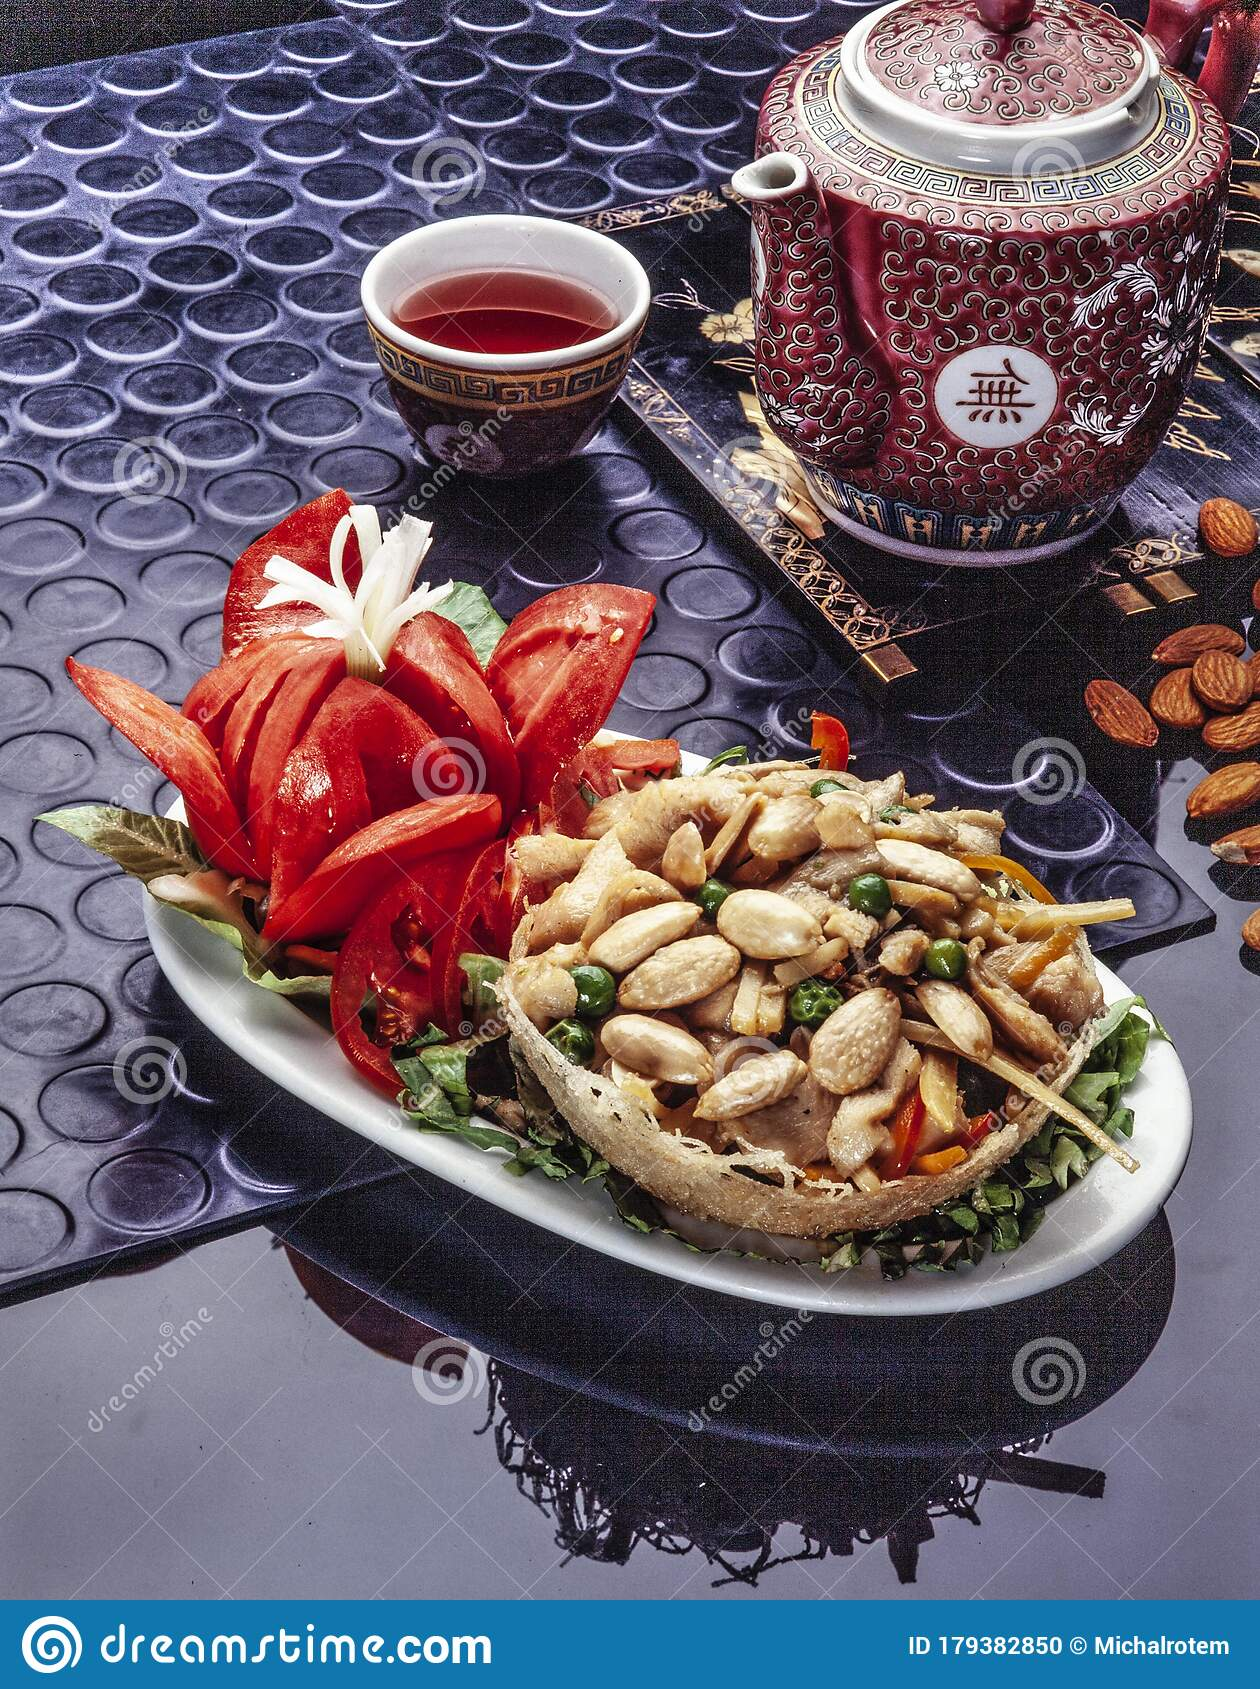 Chinese Food Almond Chicken Red Pepper Jar And Tea Cup Stock Photo Image Of Bare Stomachn 179382850